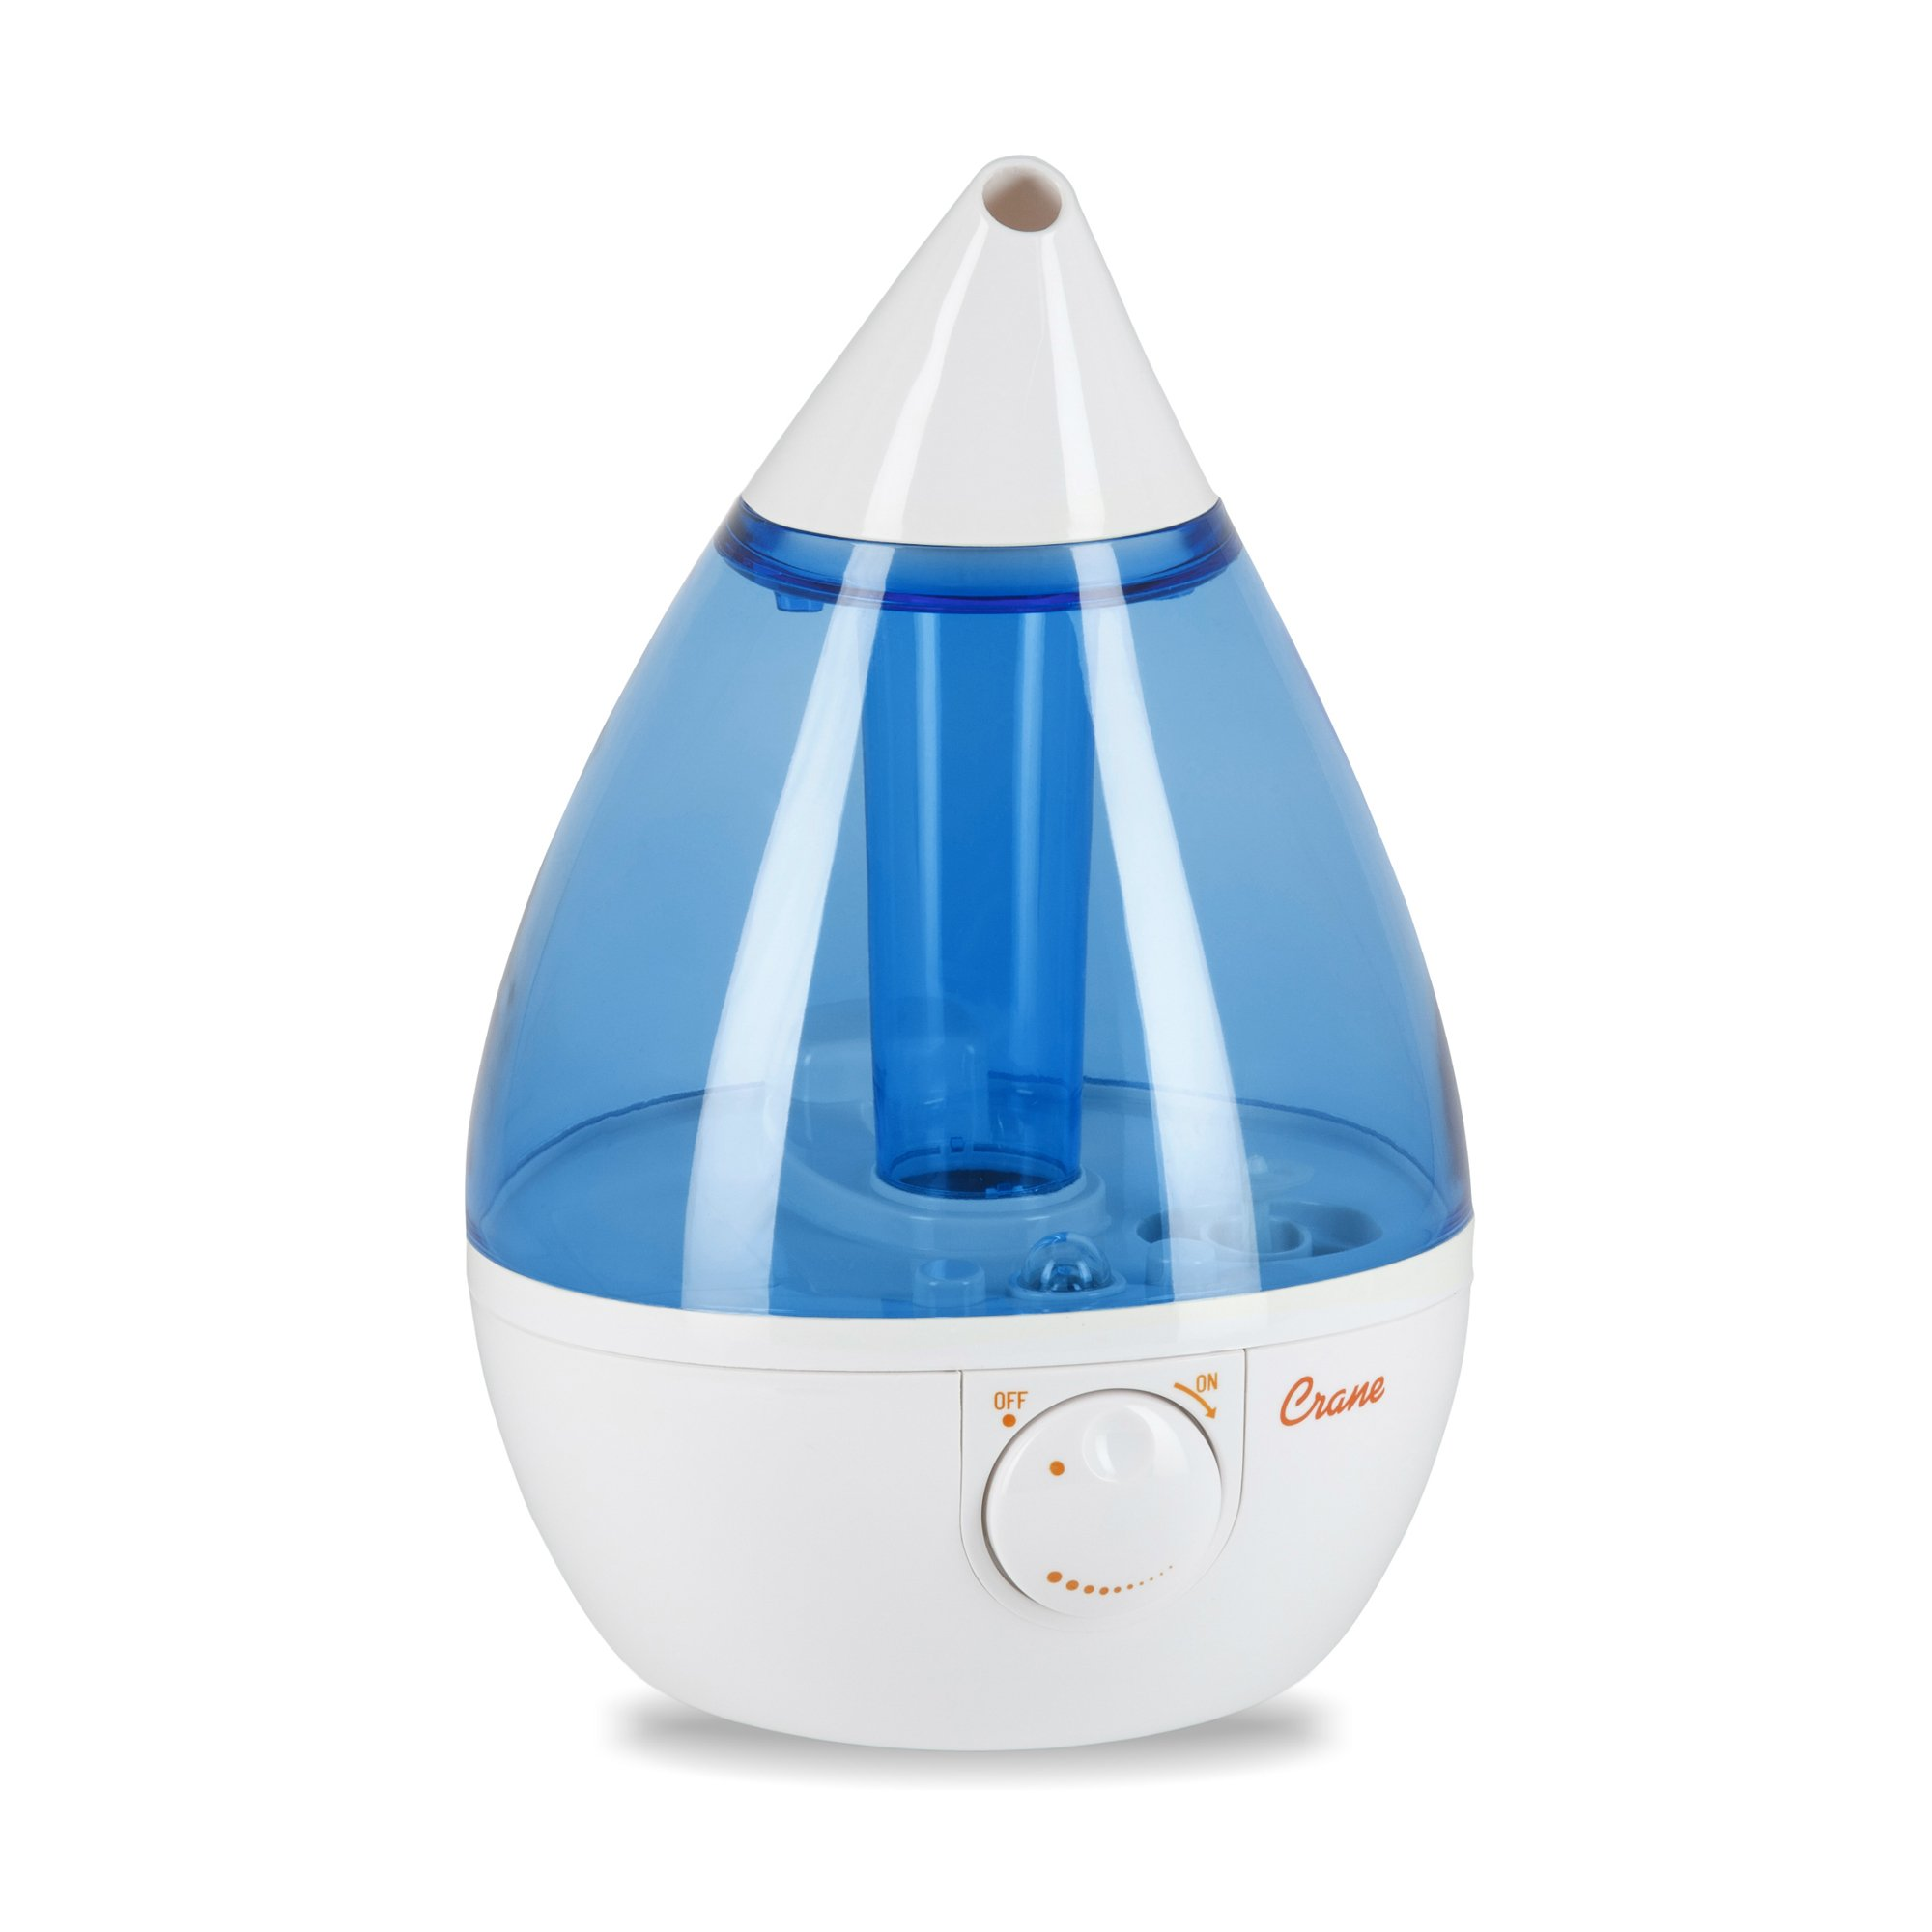 Crane USA Cool Mist Humidifier, Blue and White